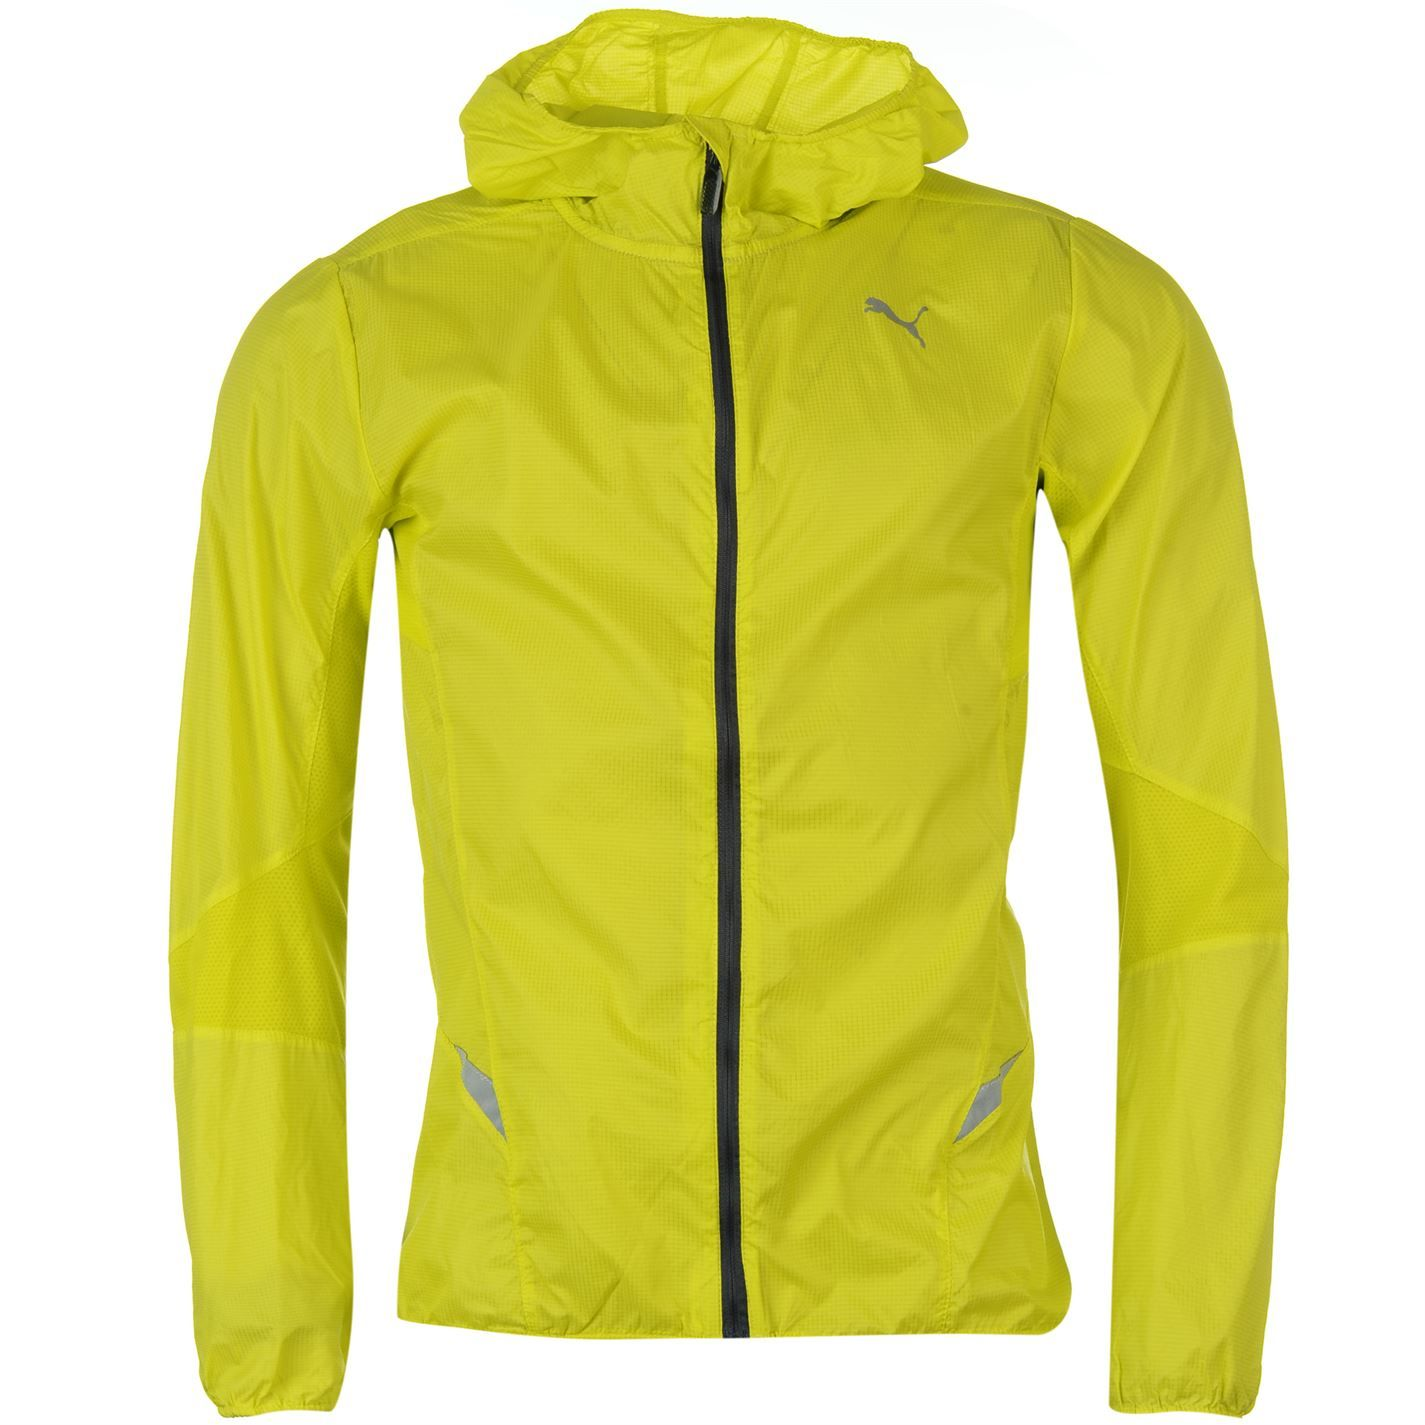 Puma Lightweight Hooded Mens Running Jacket - Yellow - Google Search